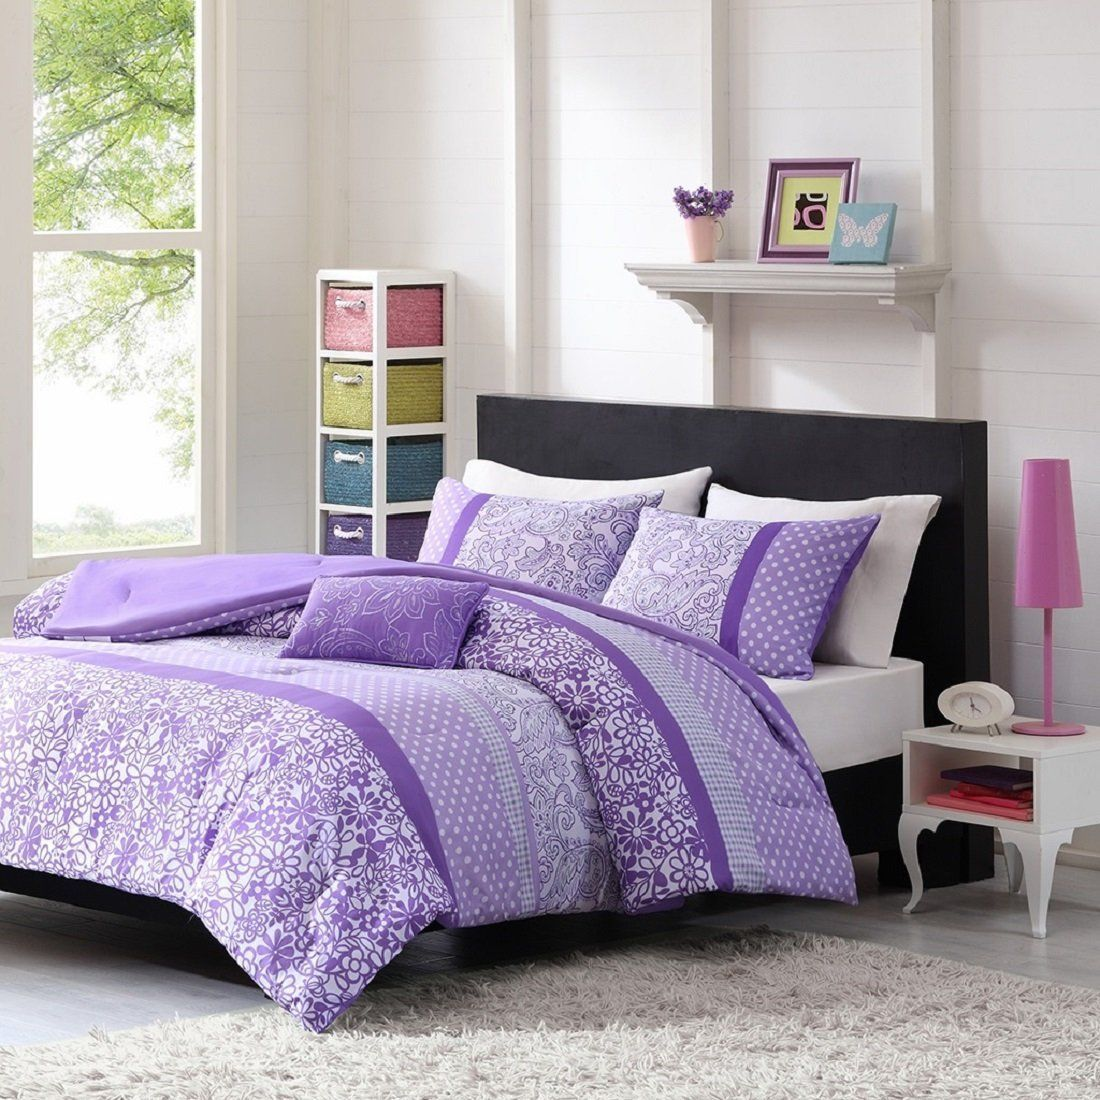 Lavender Comforters Comforter Sets Dorm Bedding Sets Purple